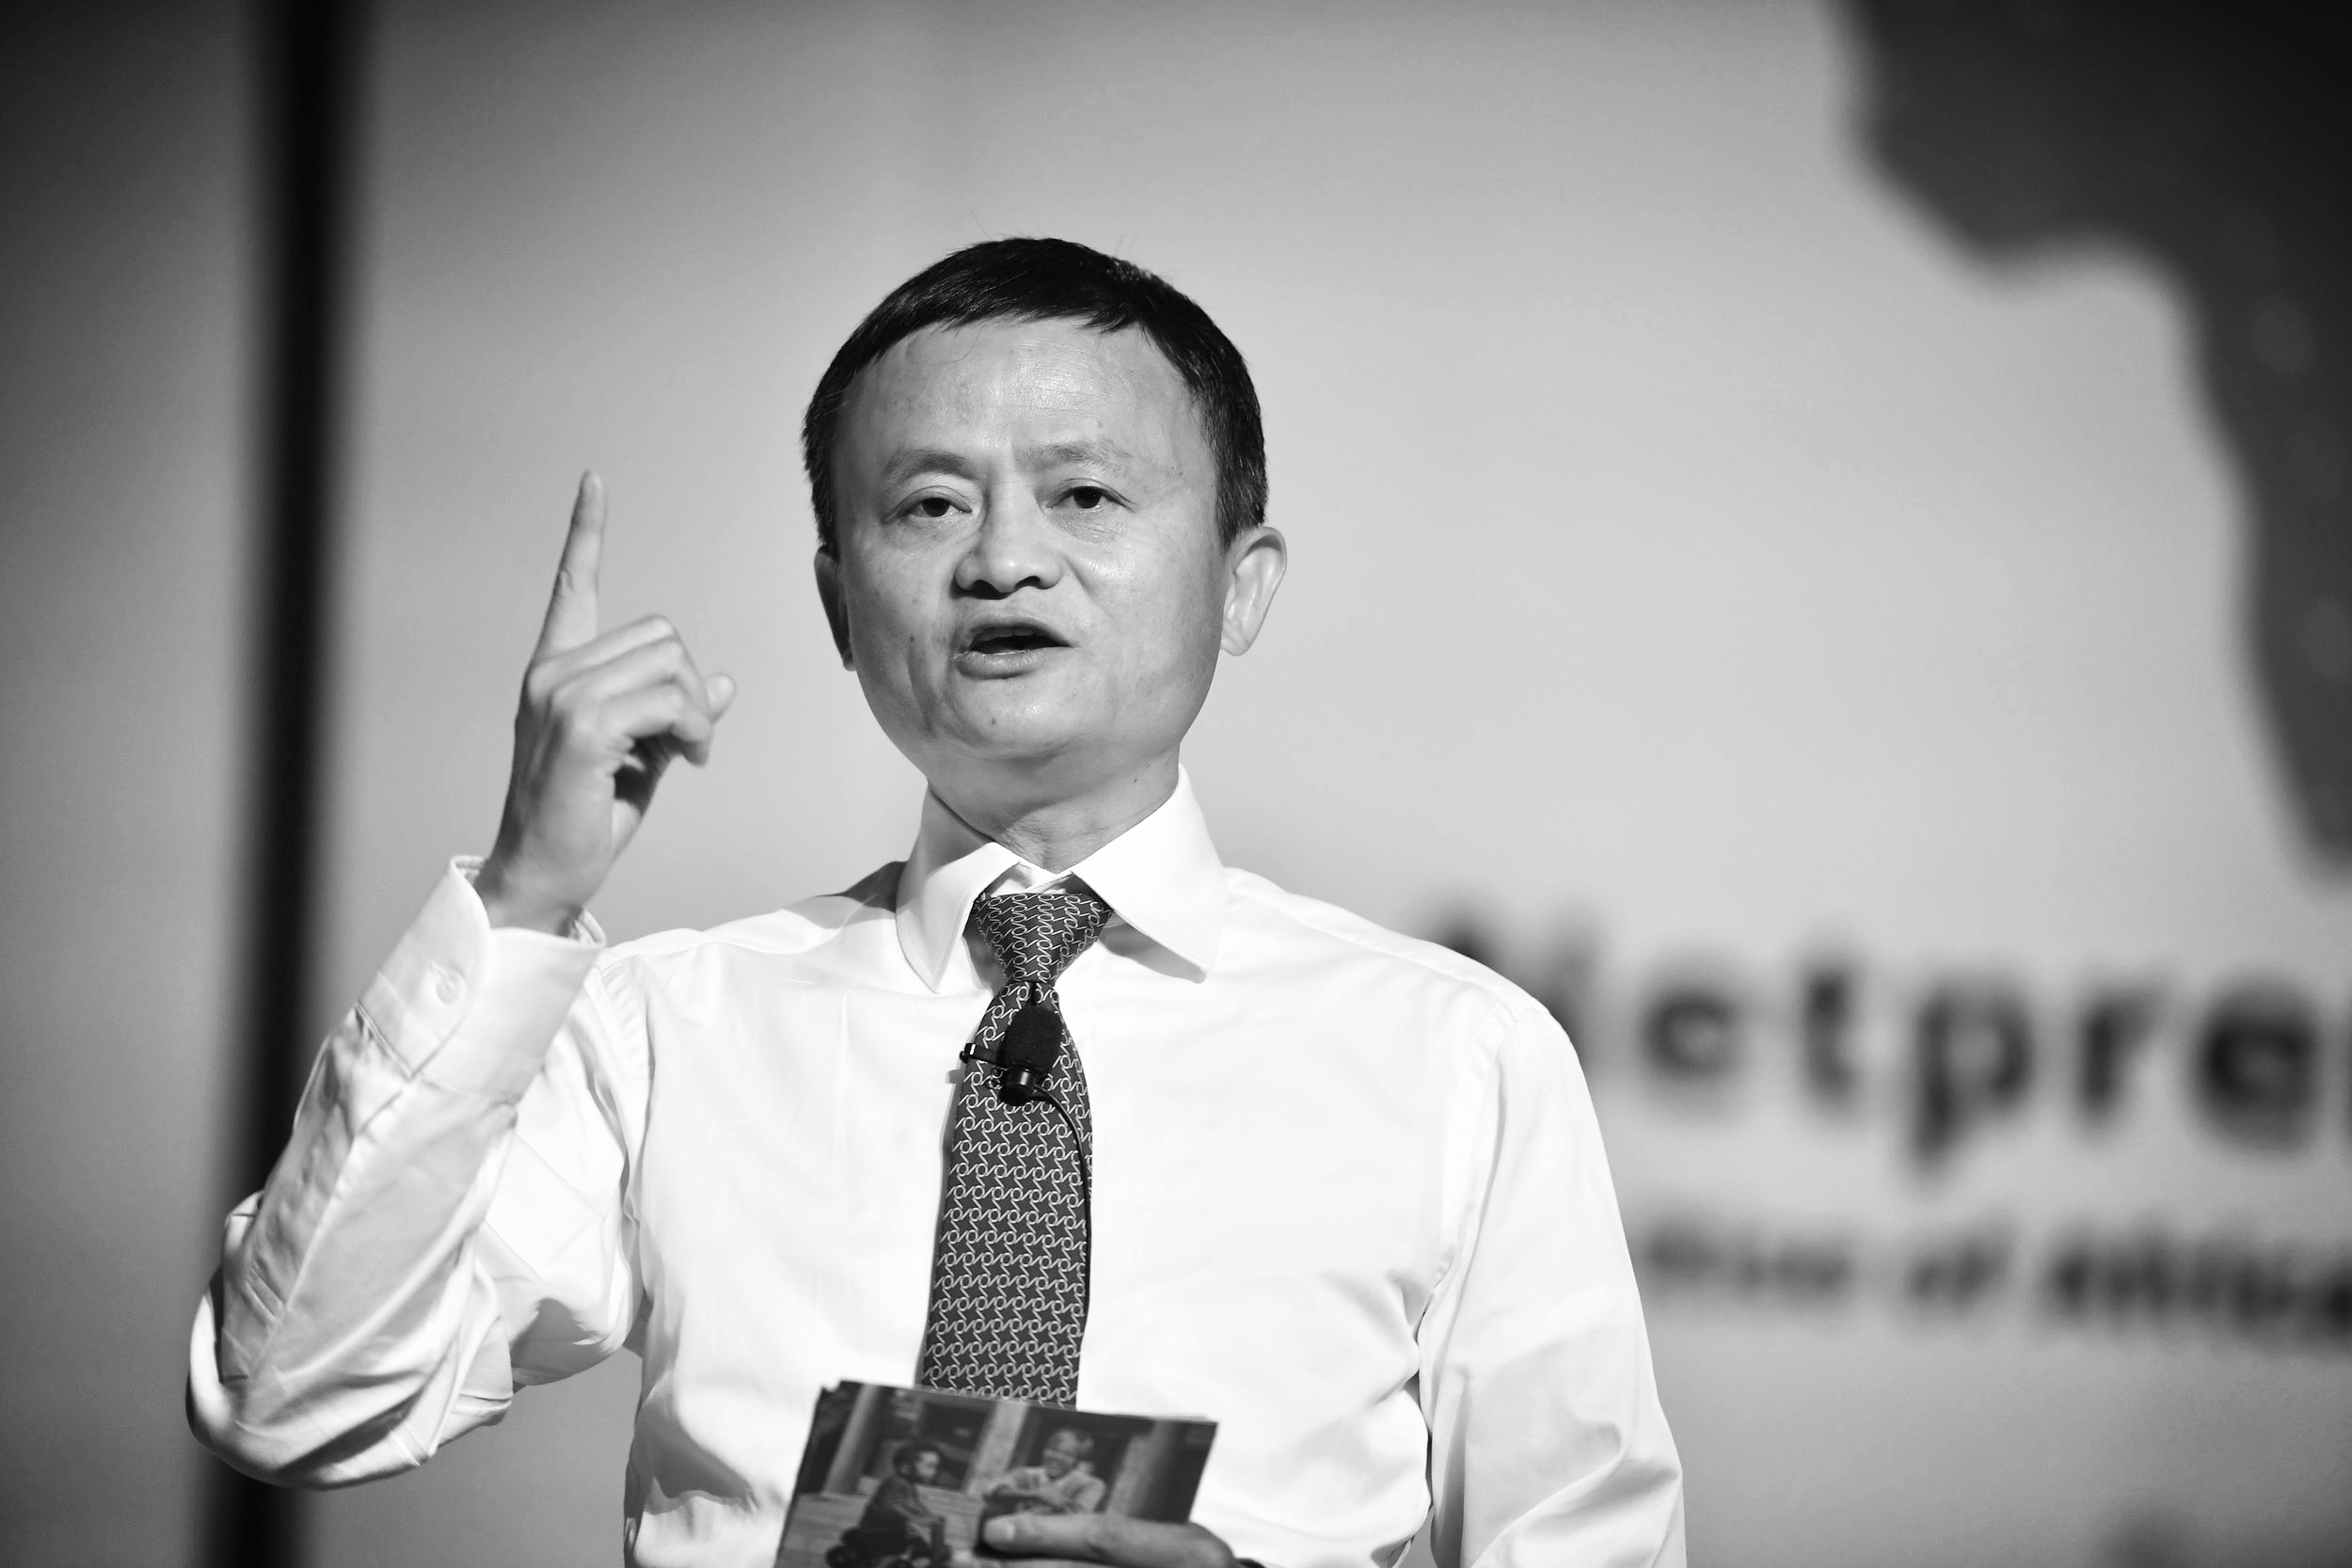 Jack Ma speaks at Netrepreneurs event in South Africa